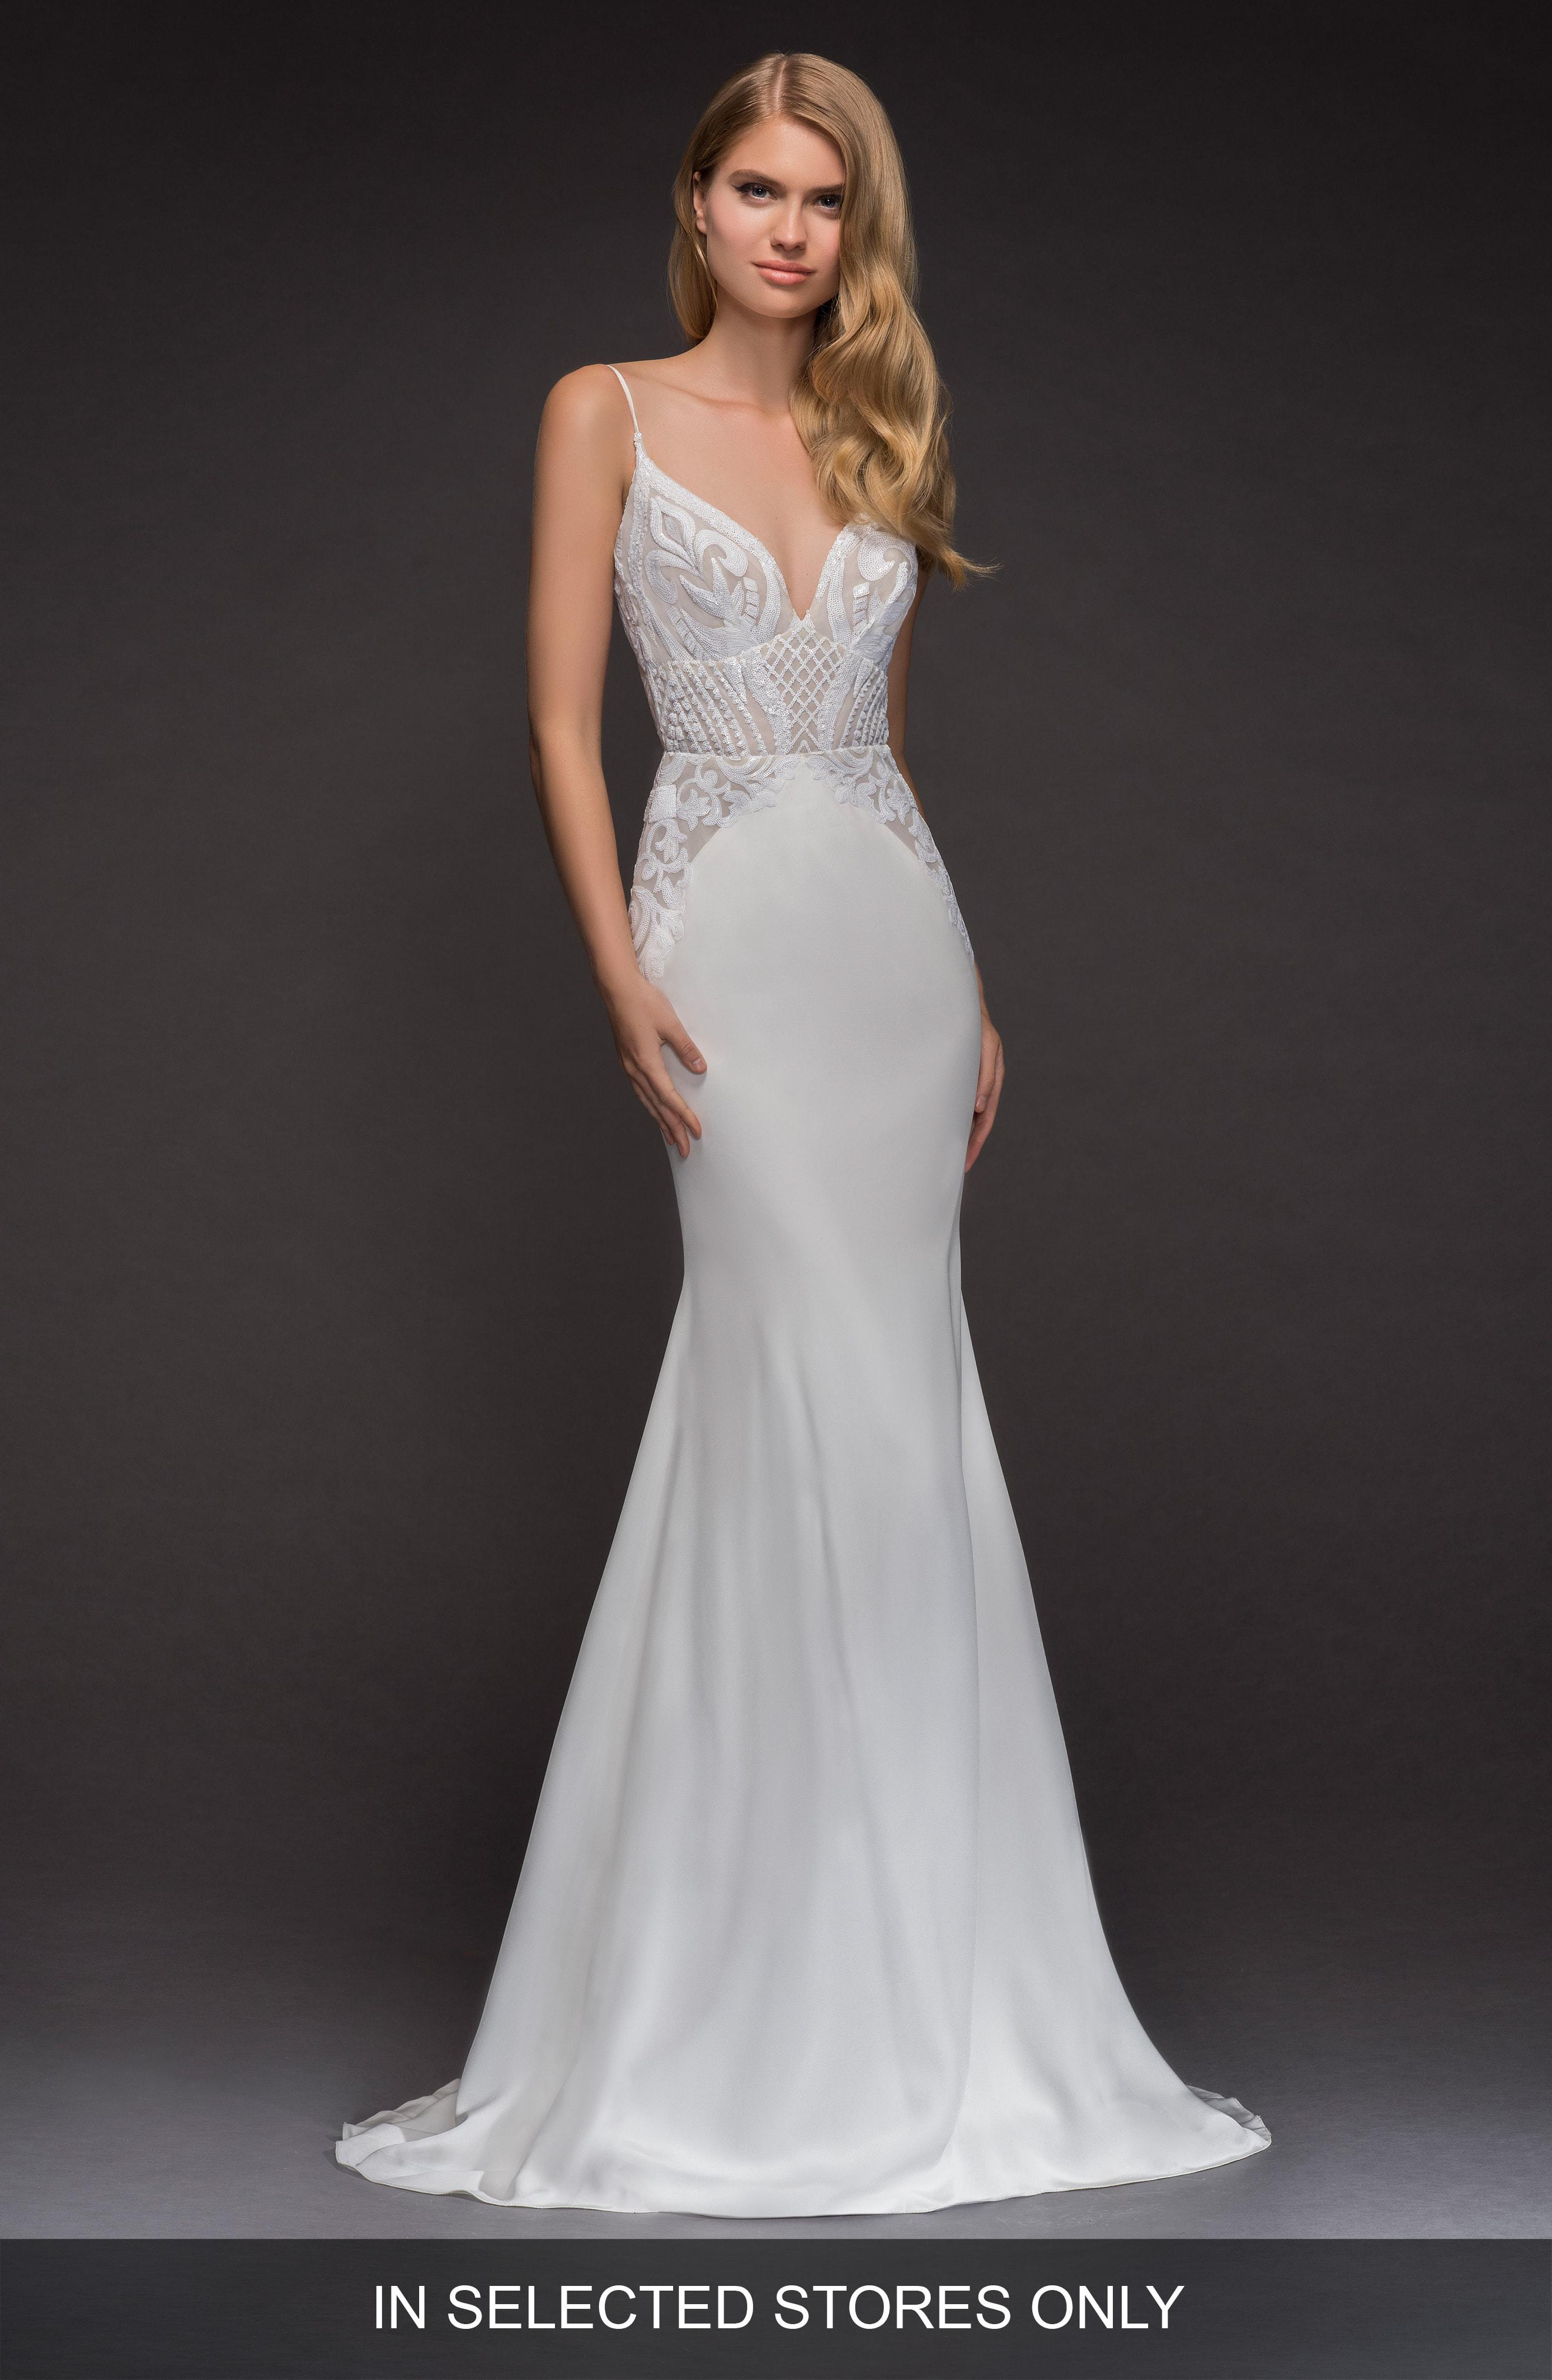 Lyst Blush By Hayley Paige Xenia Beaded Crepe Mermaid Gown In White